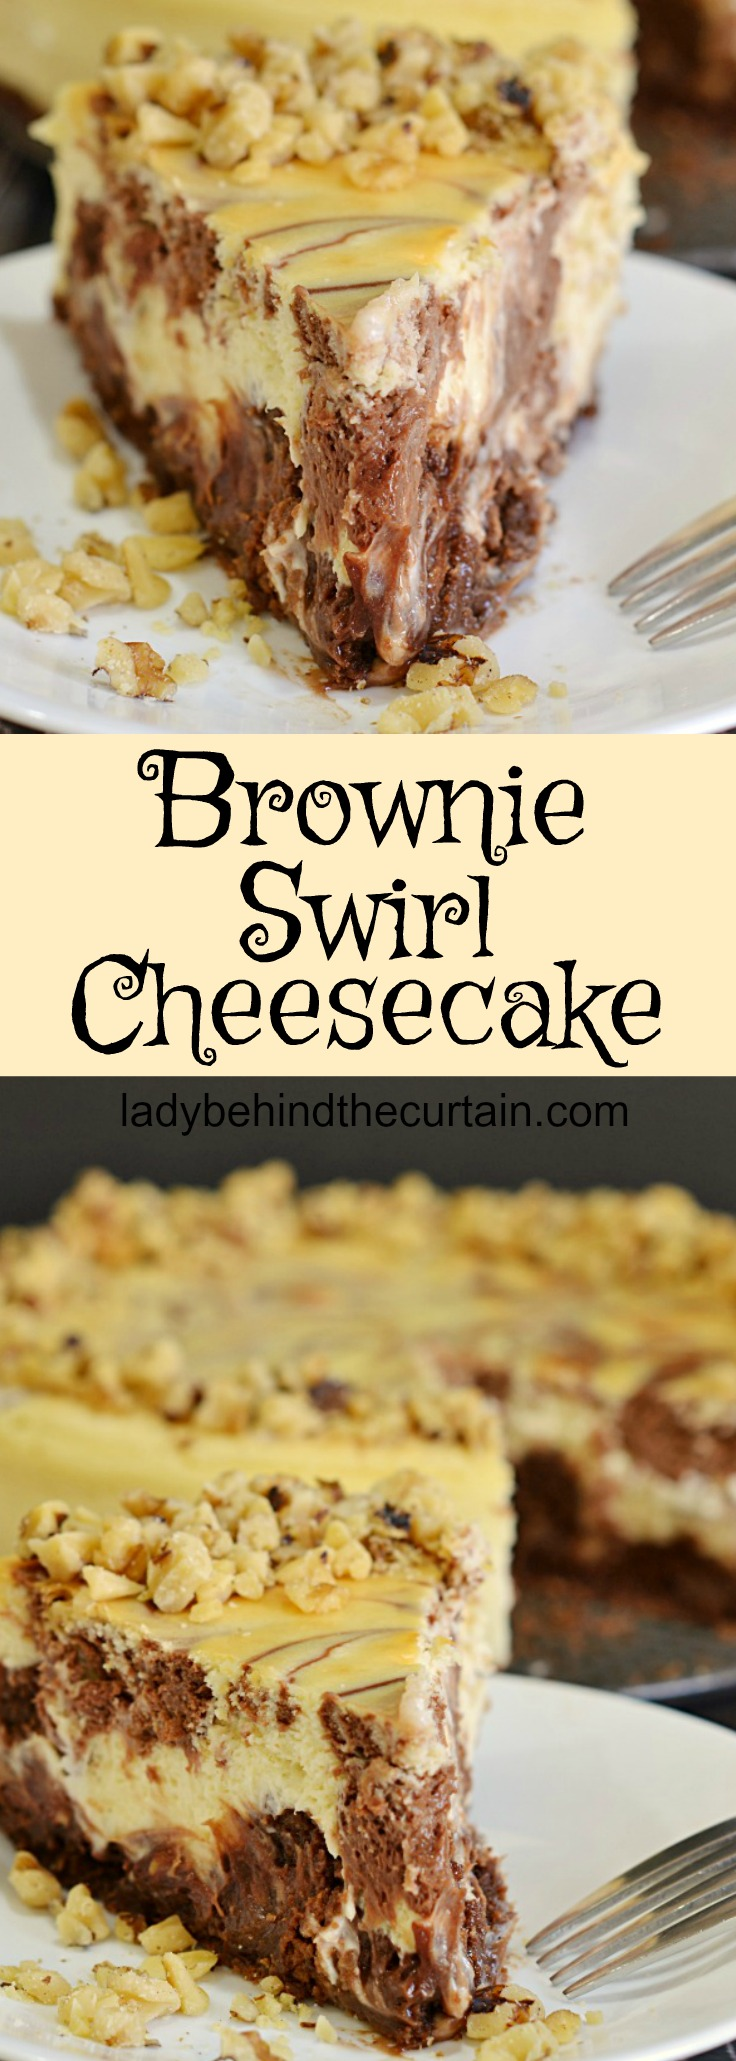 Brownie Swirl Cheesecake| chocolate desset, cheesecake, valentine's ...